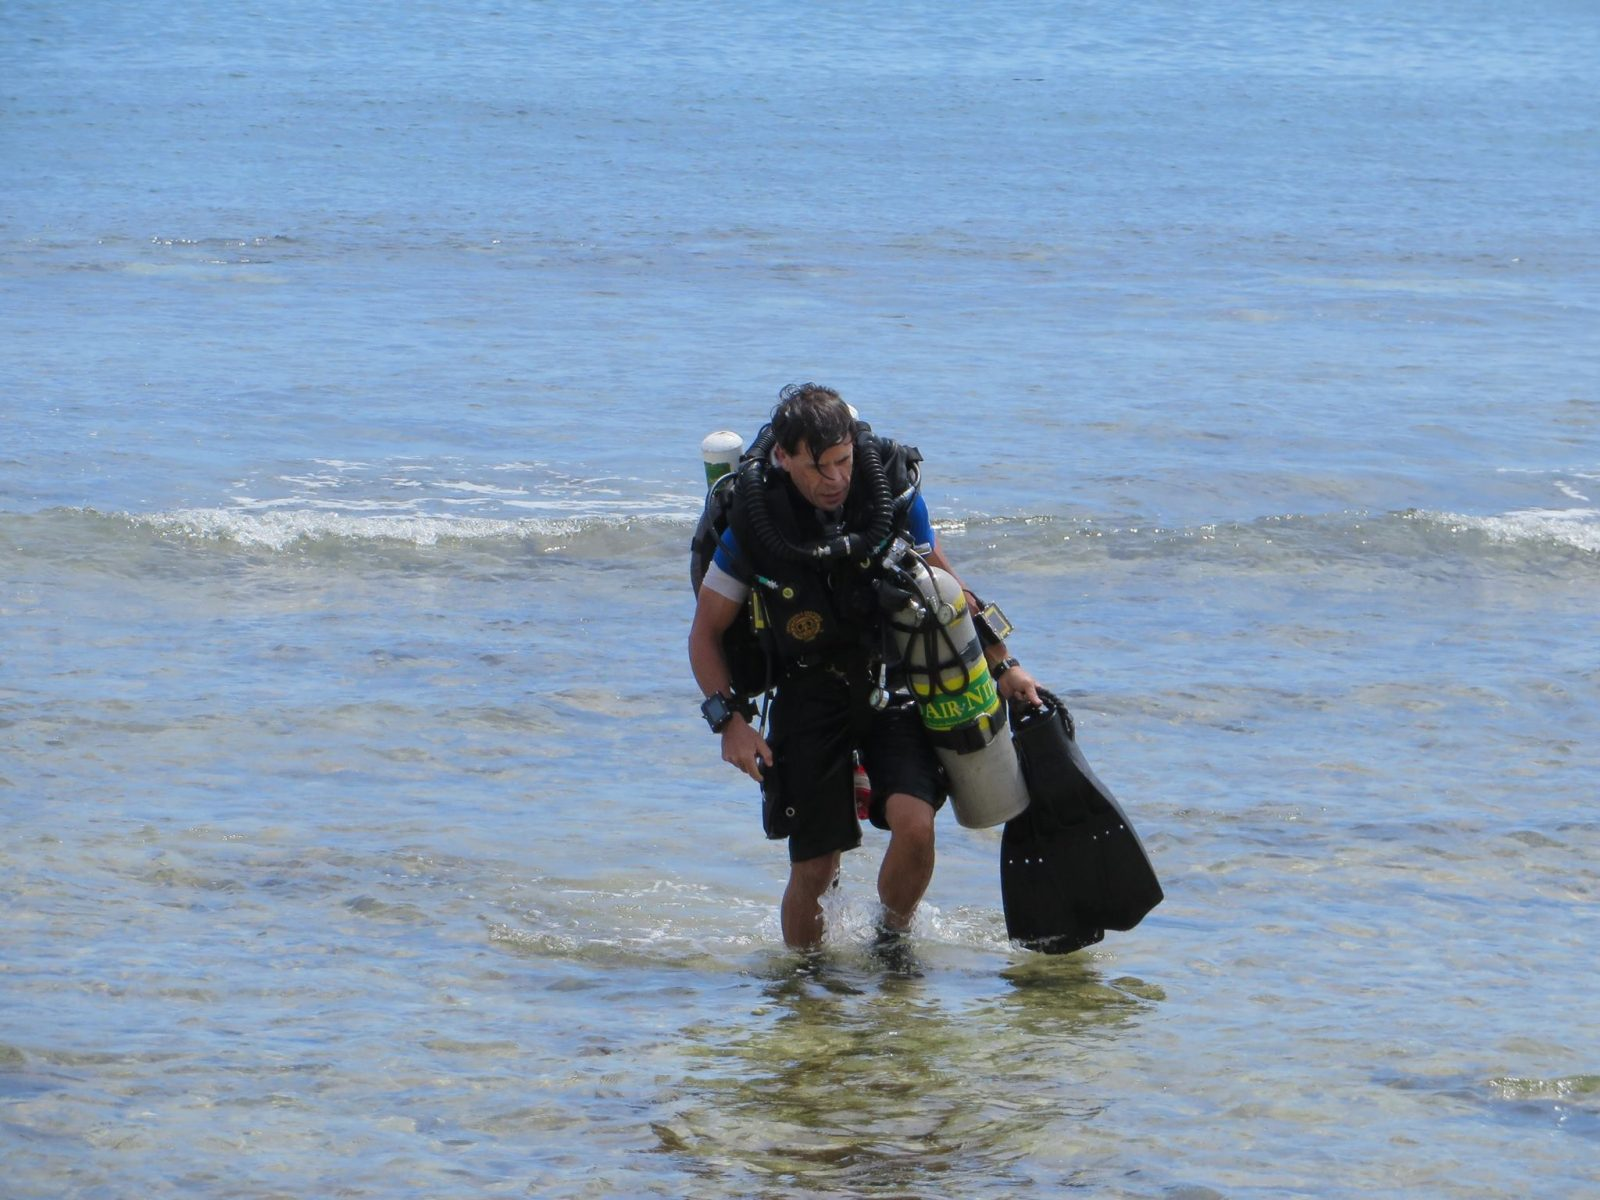 Missing diver identified